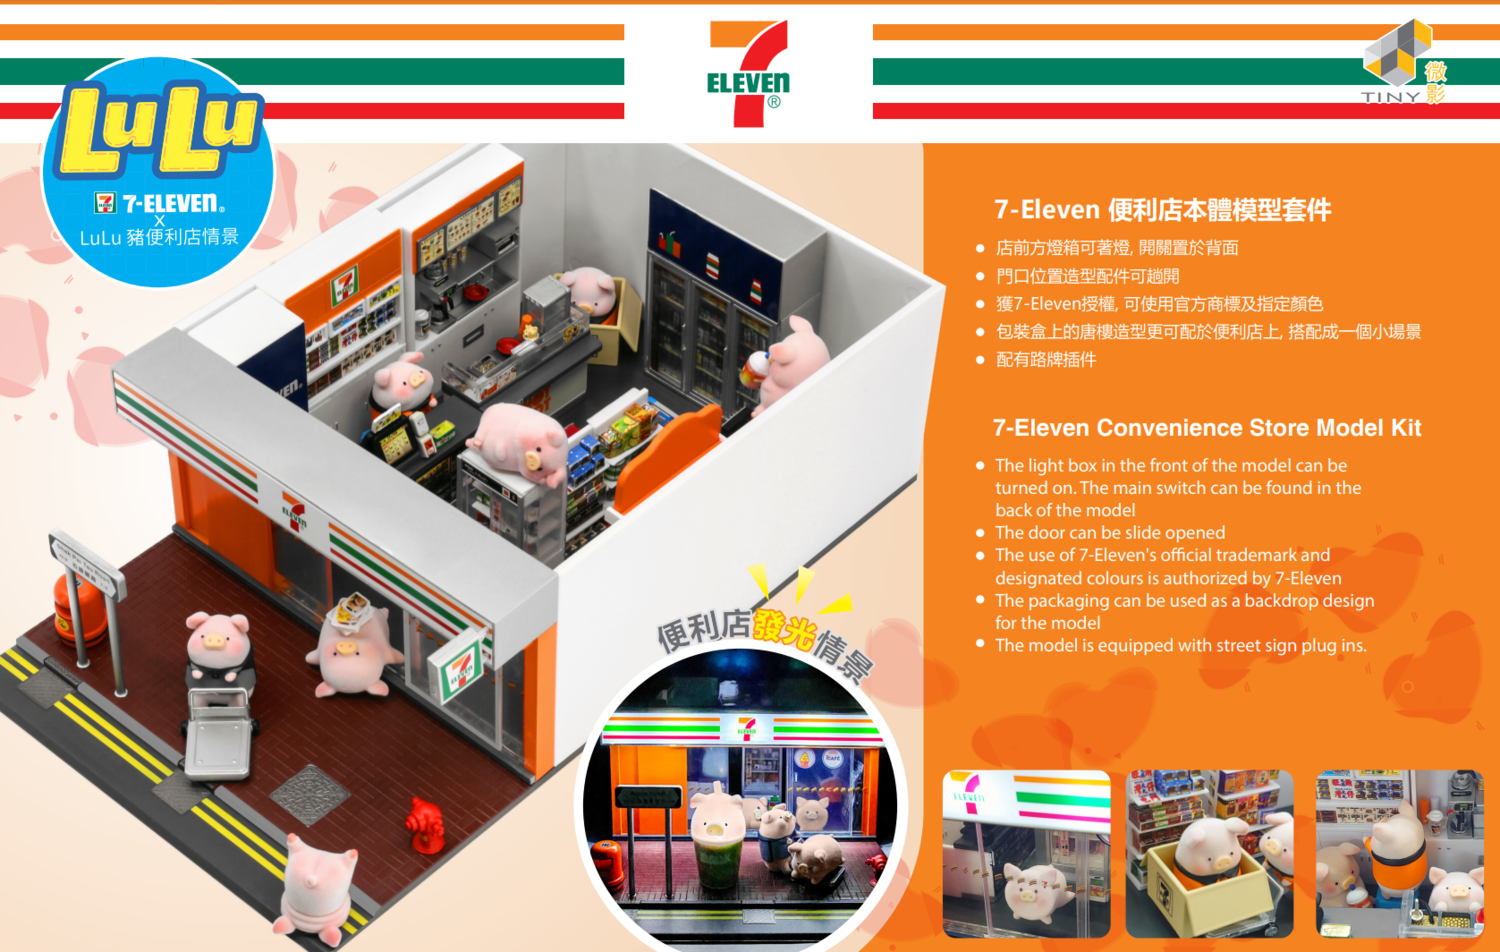 PRE-ORDER LuLu Pig x 7-ELEVEN Complete Set of 12 with Convenience Store